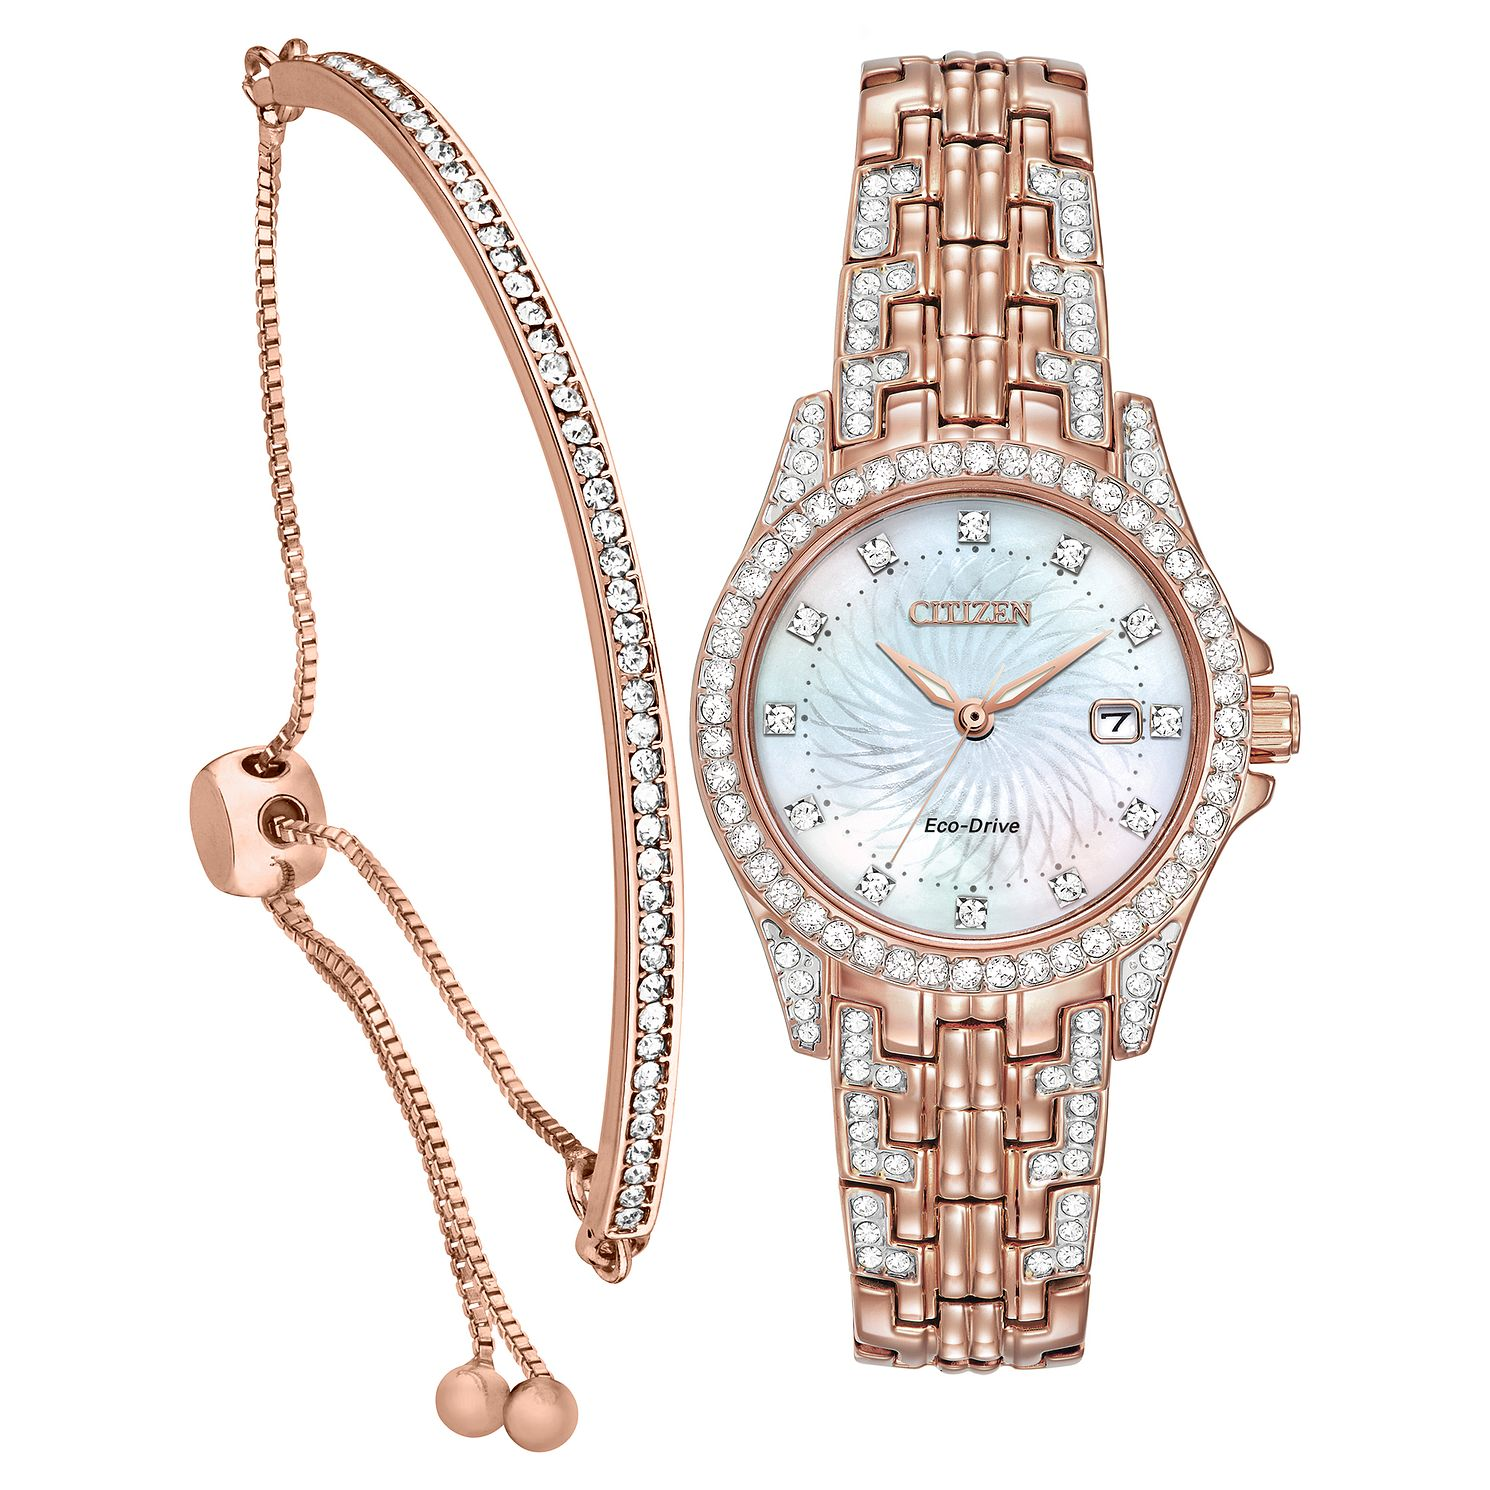 Citizen Ladies' Crystal Eco-Drive Watch & Bracelet Gift Set - Product number 5276330